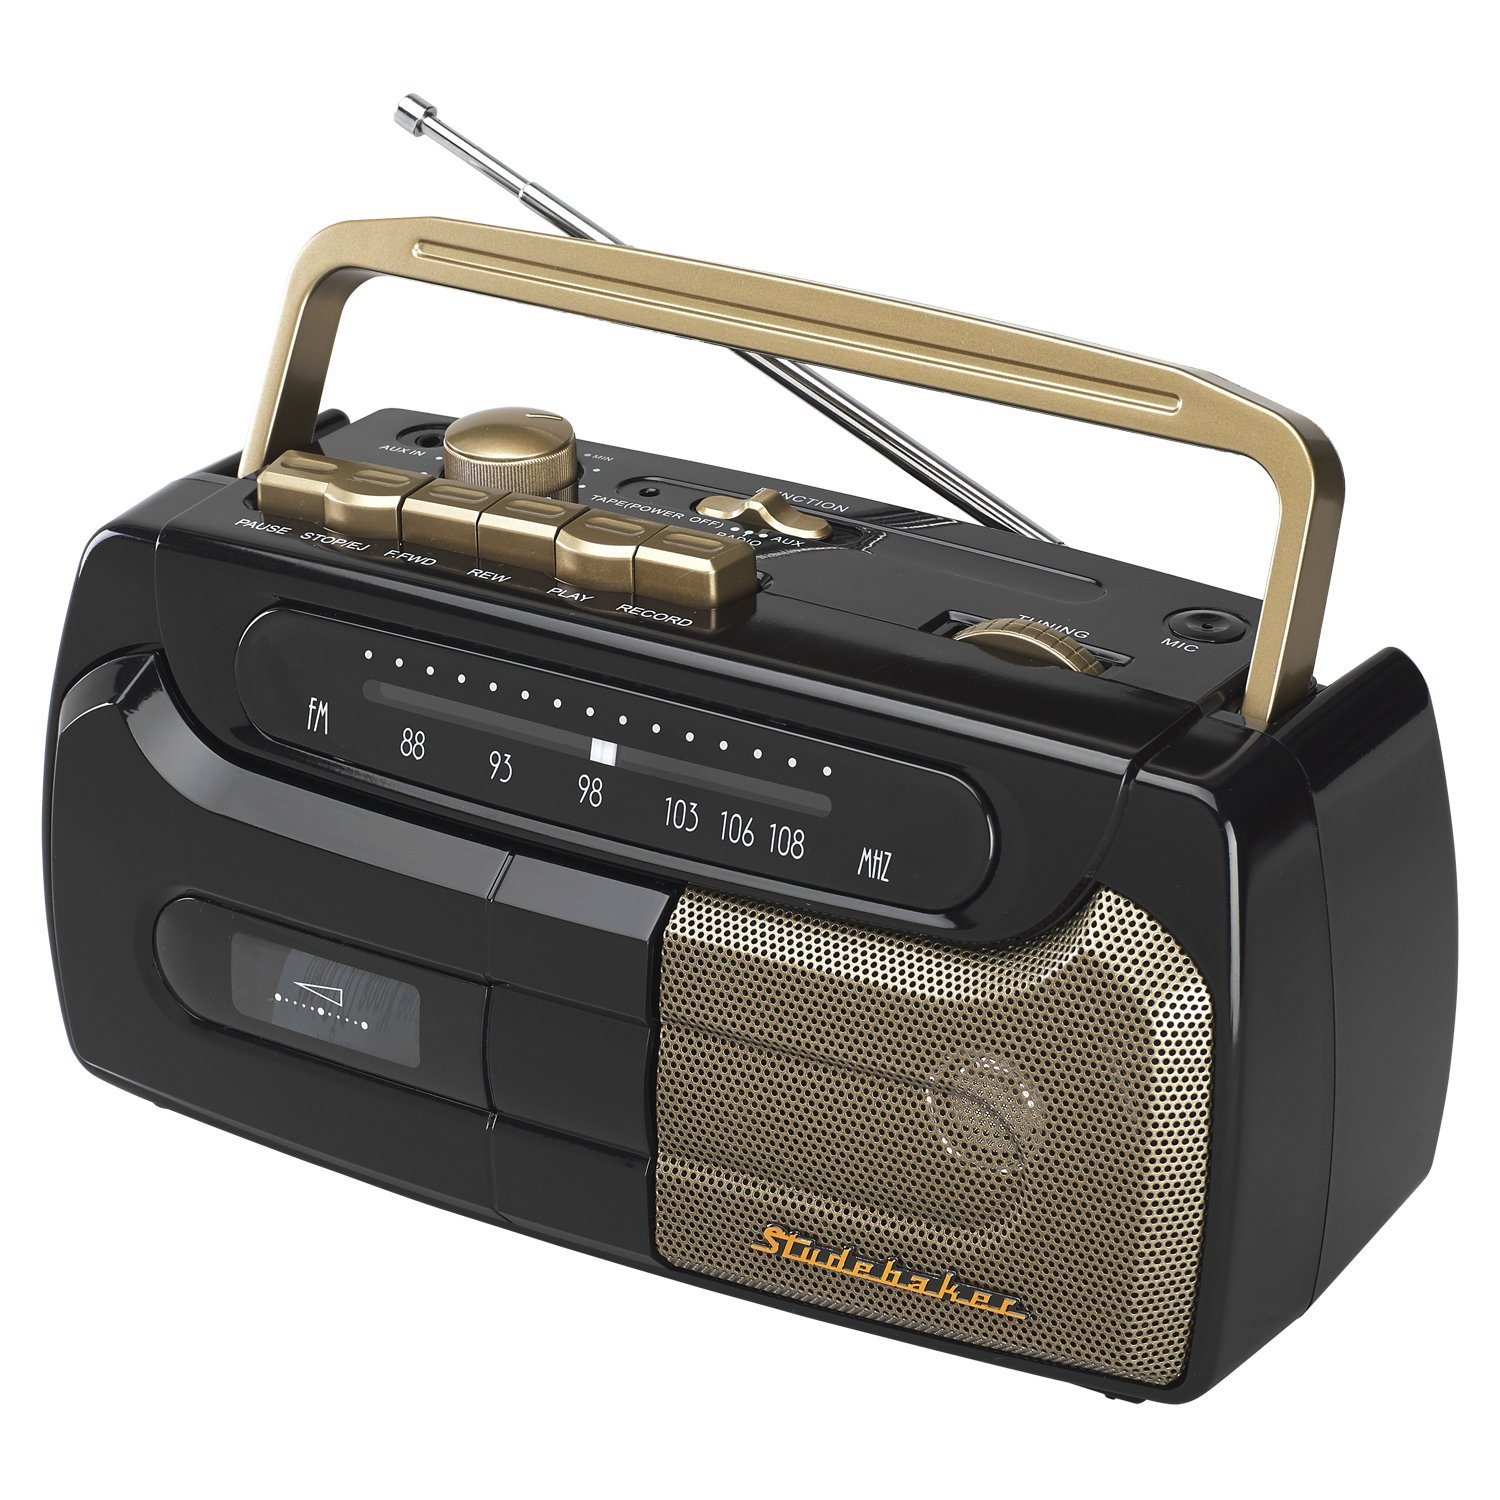 Studebaker Portable Cassette Recorder and Player with FM Radio Aux Input for External Devices